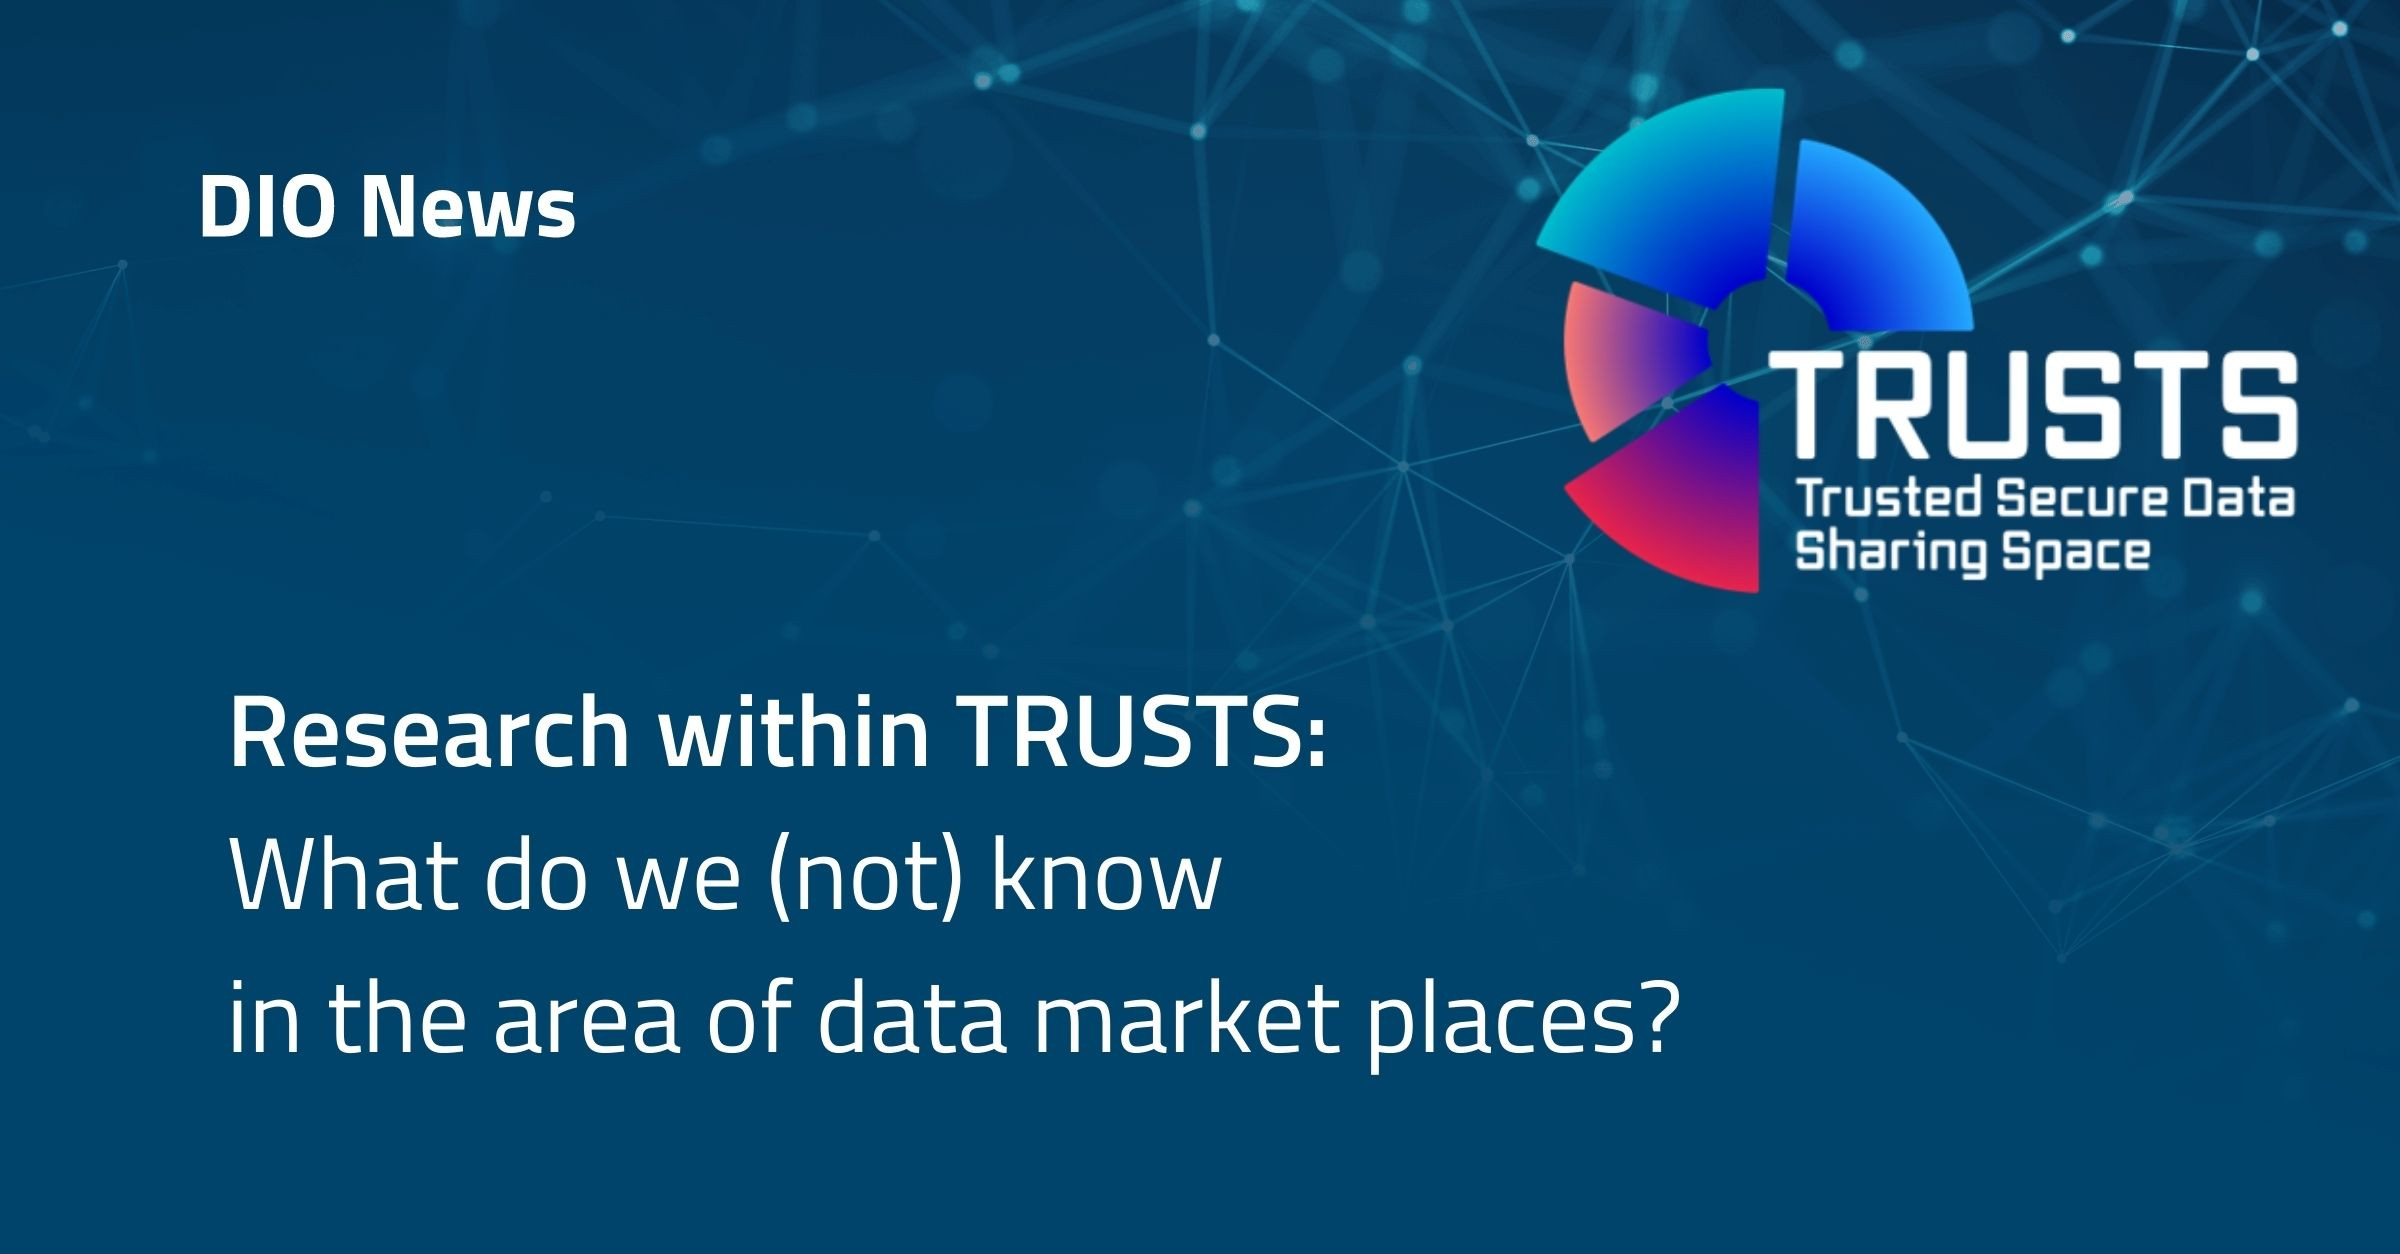 TRUSTS Research